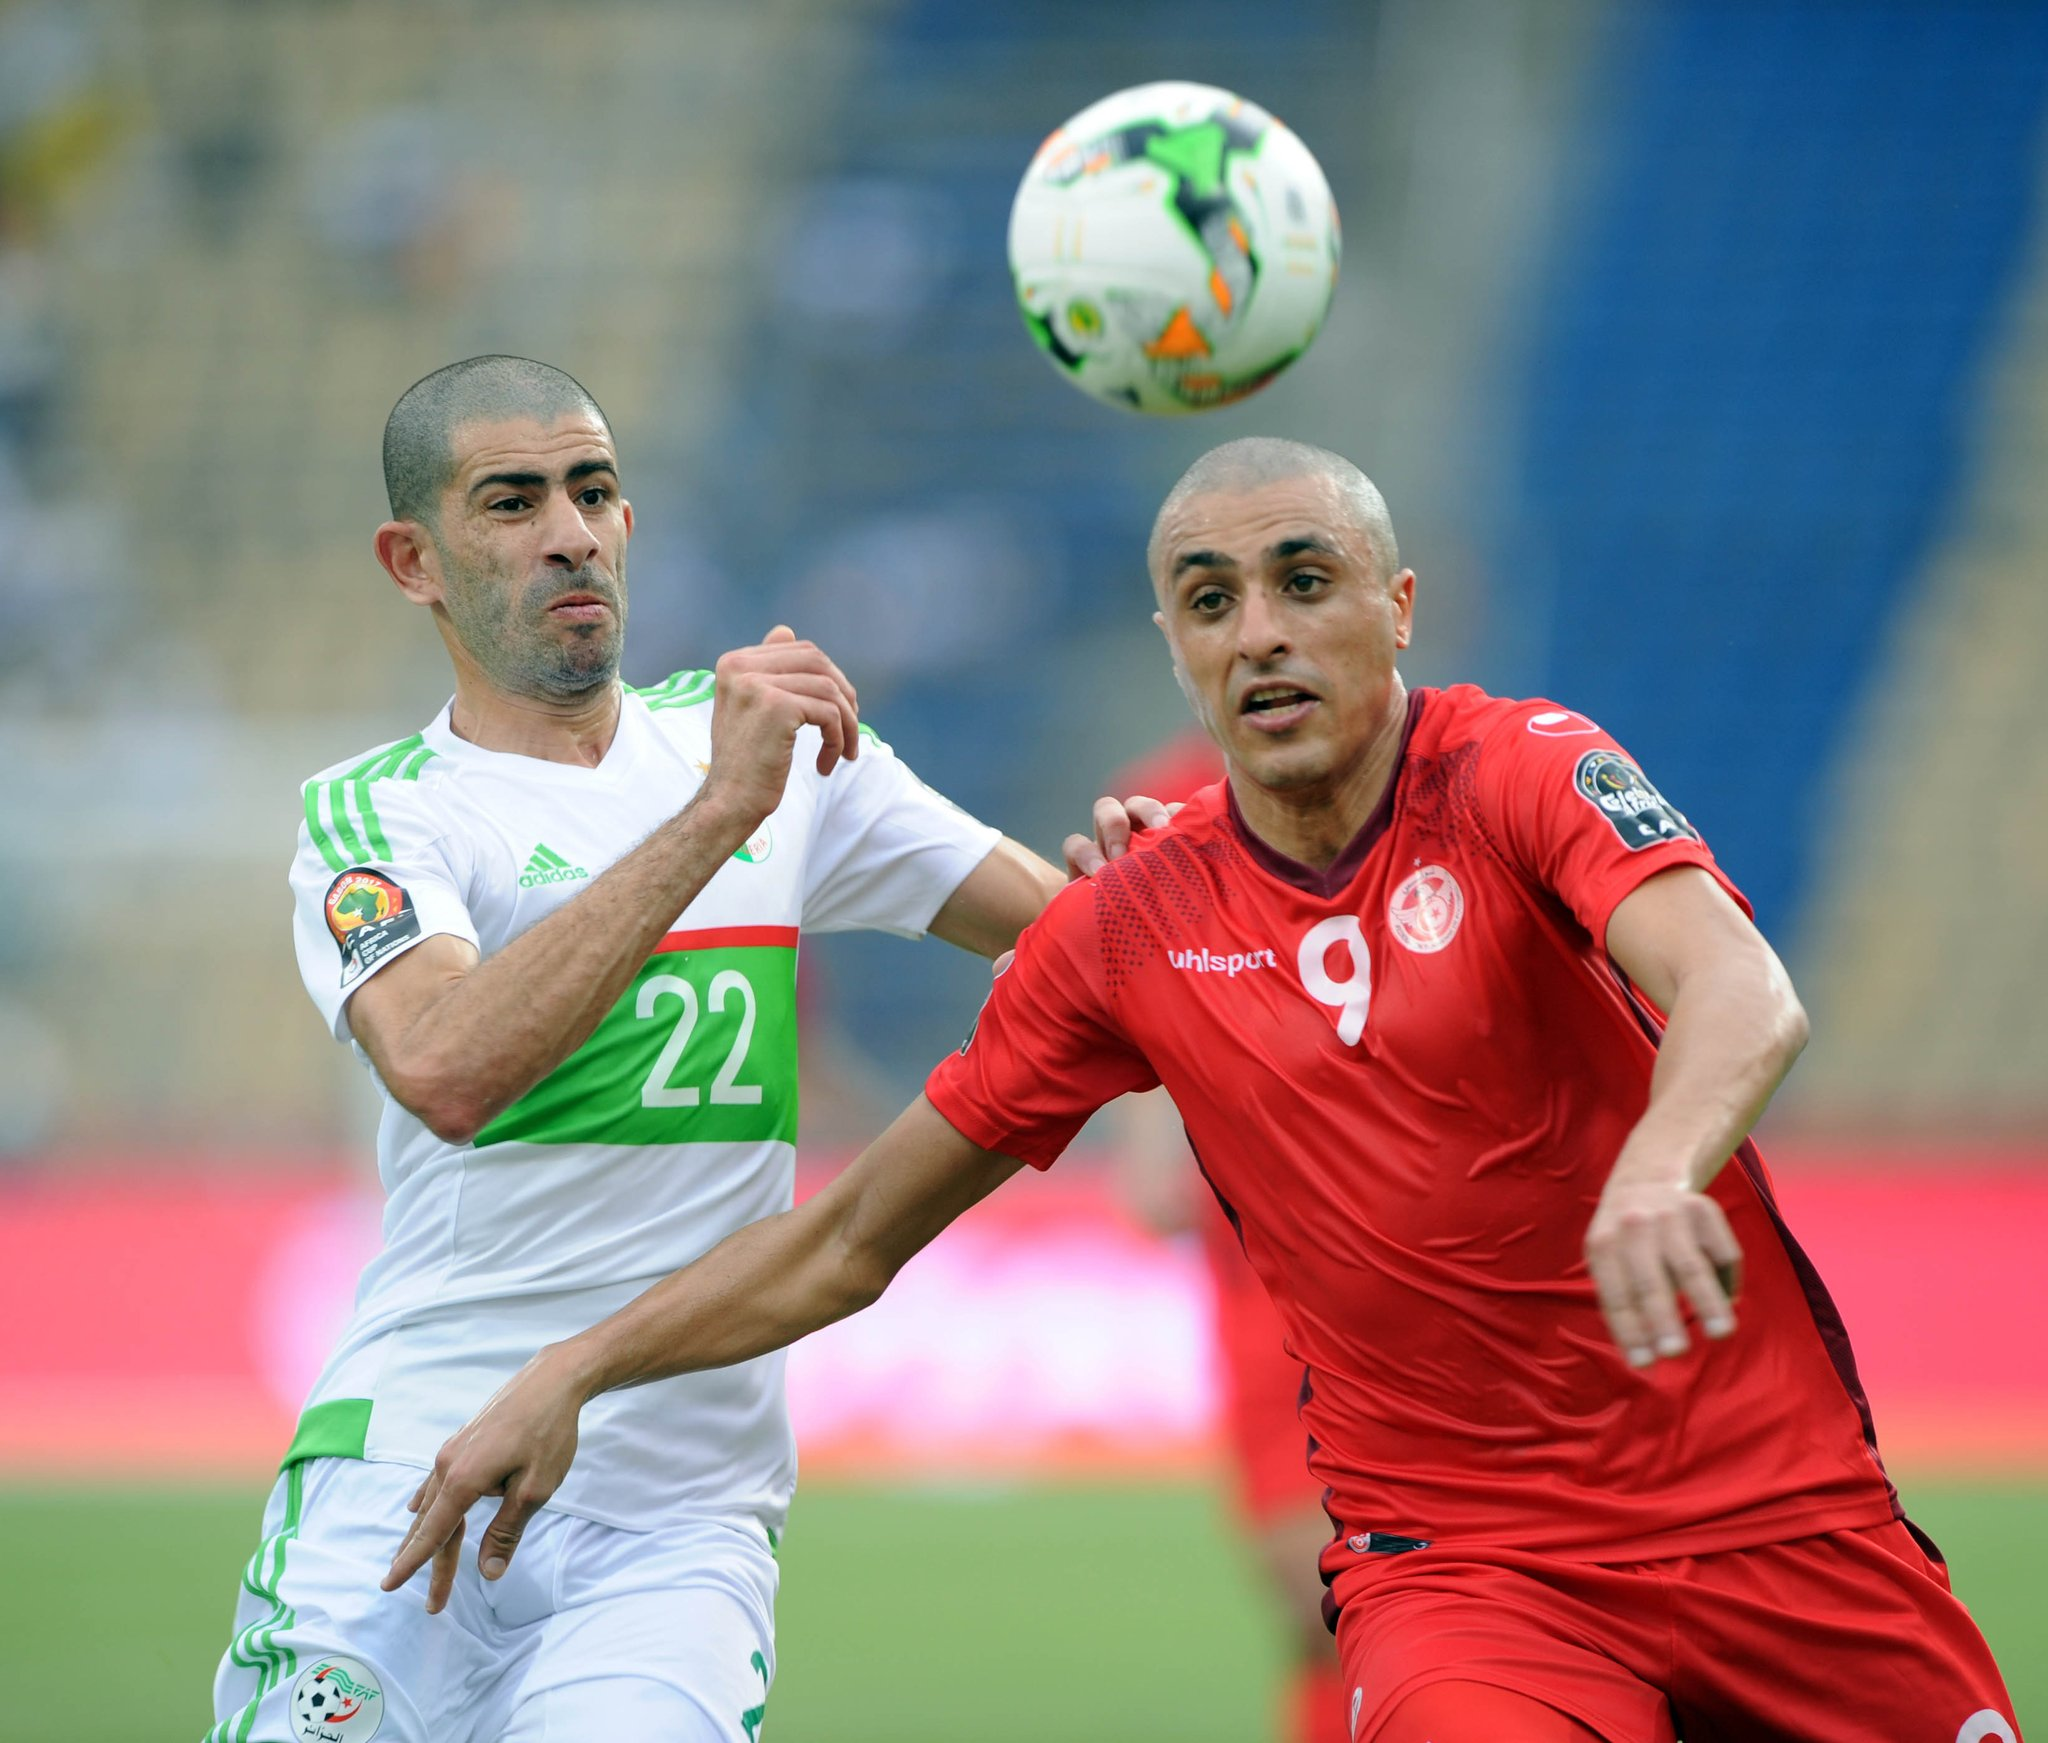 AFCON 2017: Algeria Fall To Tunisia, On Verge Of Exit